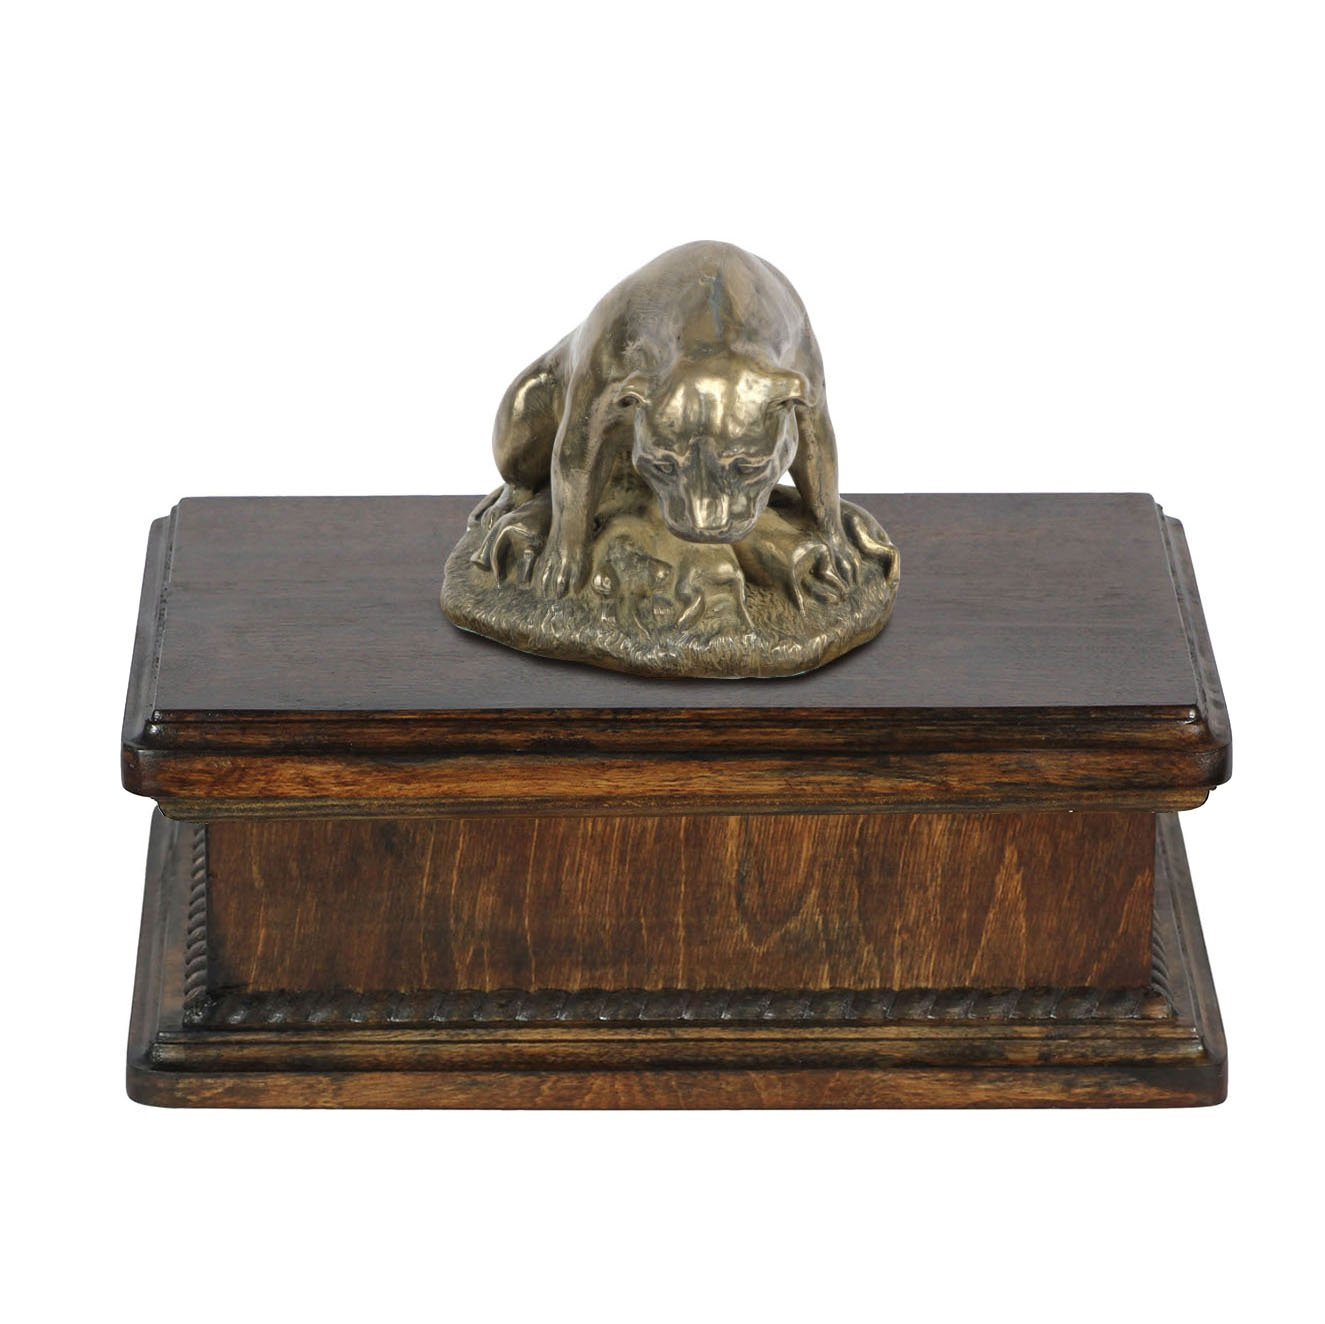 English Staffordshire Terrier (mama), memorial, urn for dog's ashes, with dog statue, exclusive, ArtDog